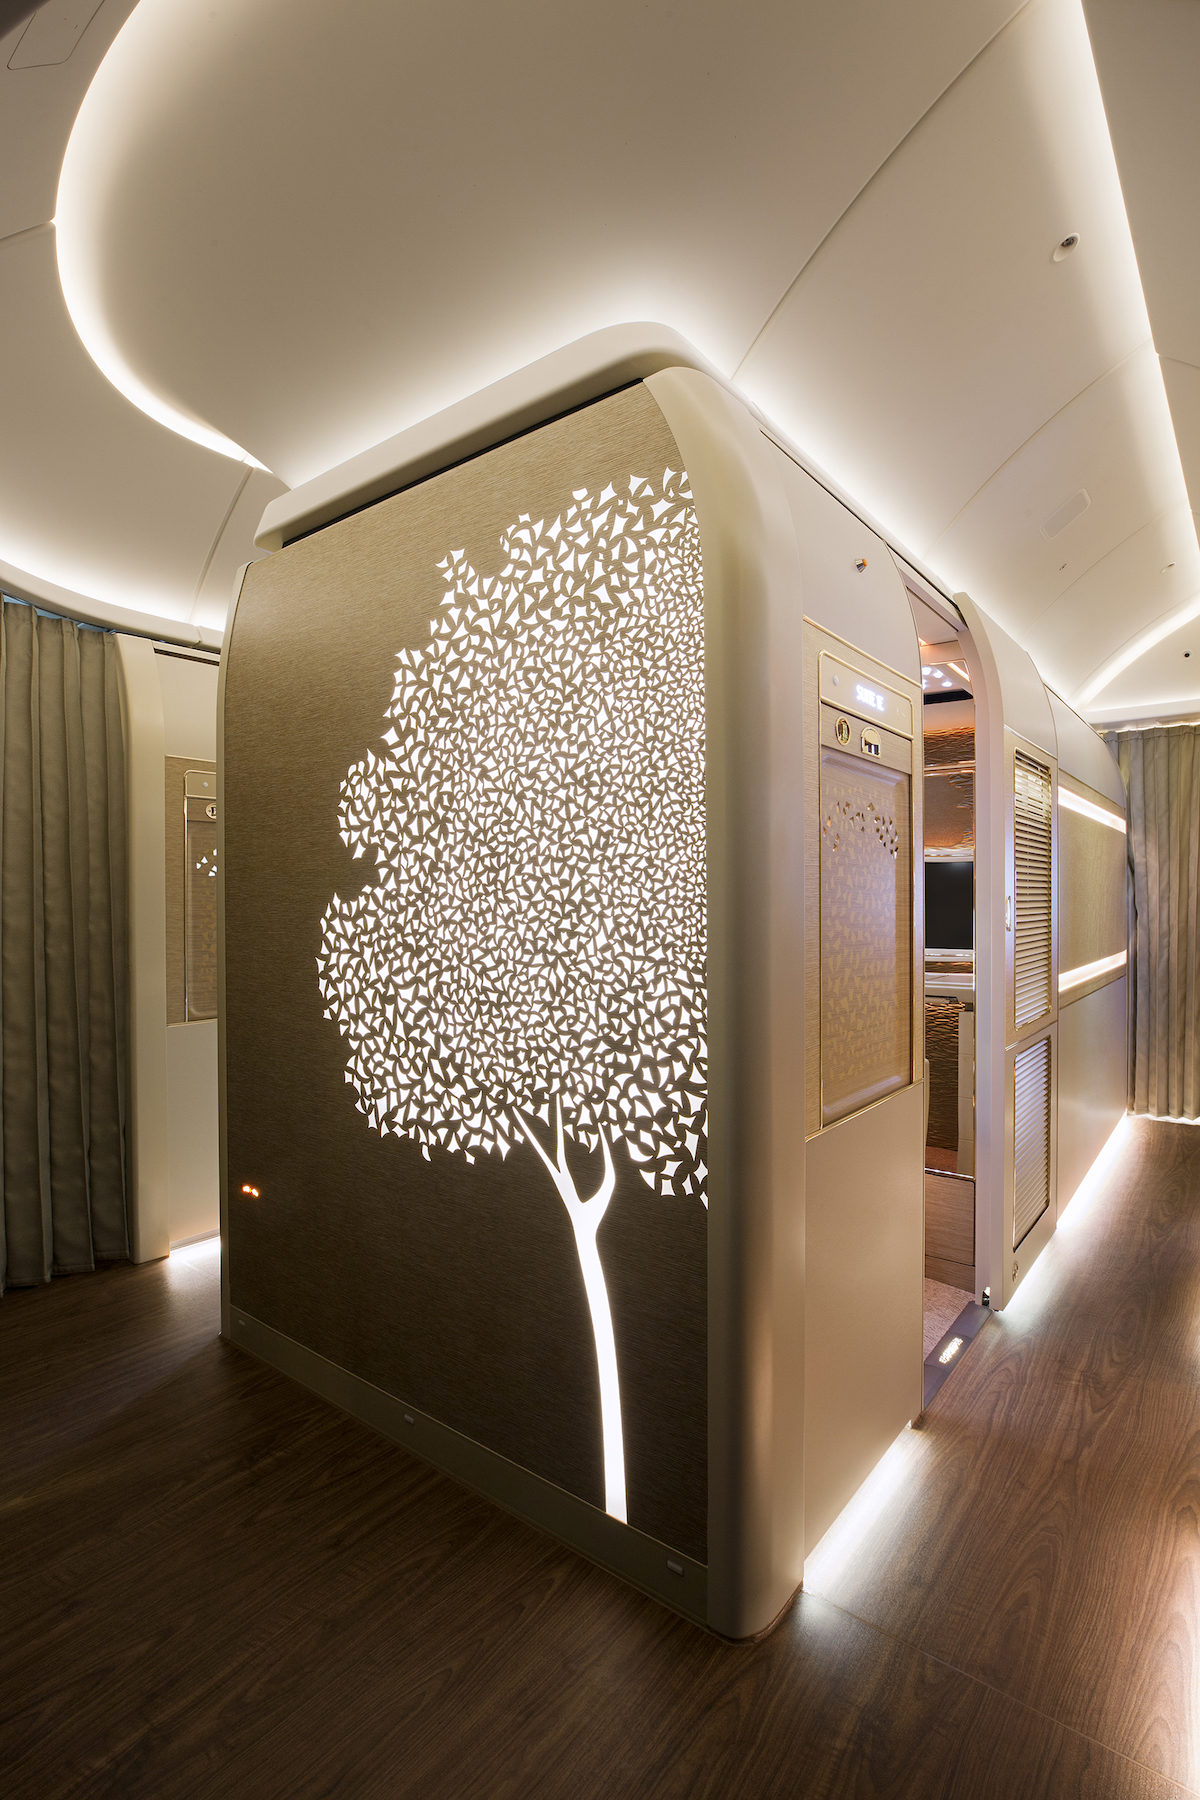 EMIRATES AIRLINE UNVEILS THEIR BREATHTAKING FIRST CLASS REMODEL ON THE BOEING 777